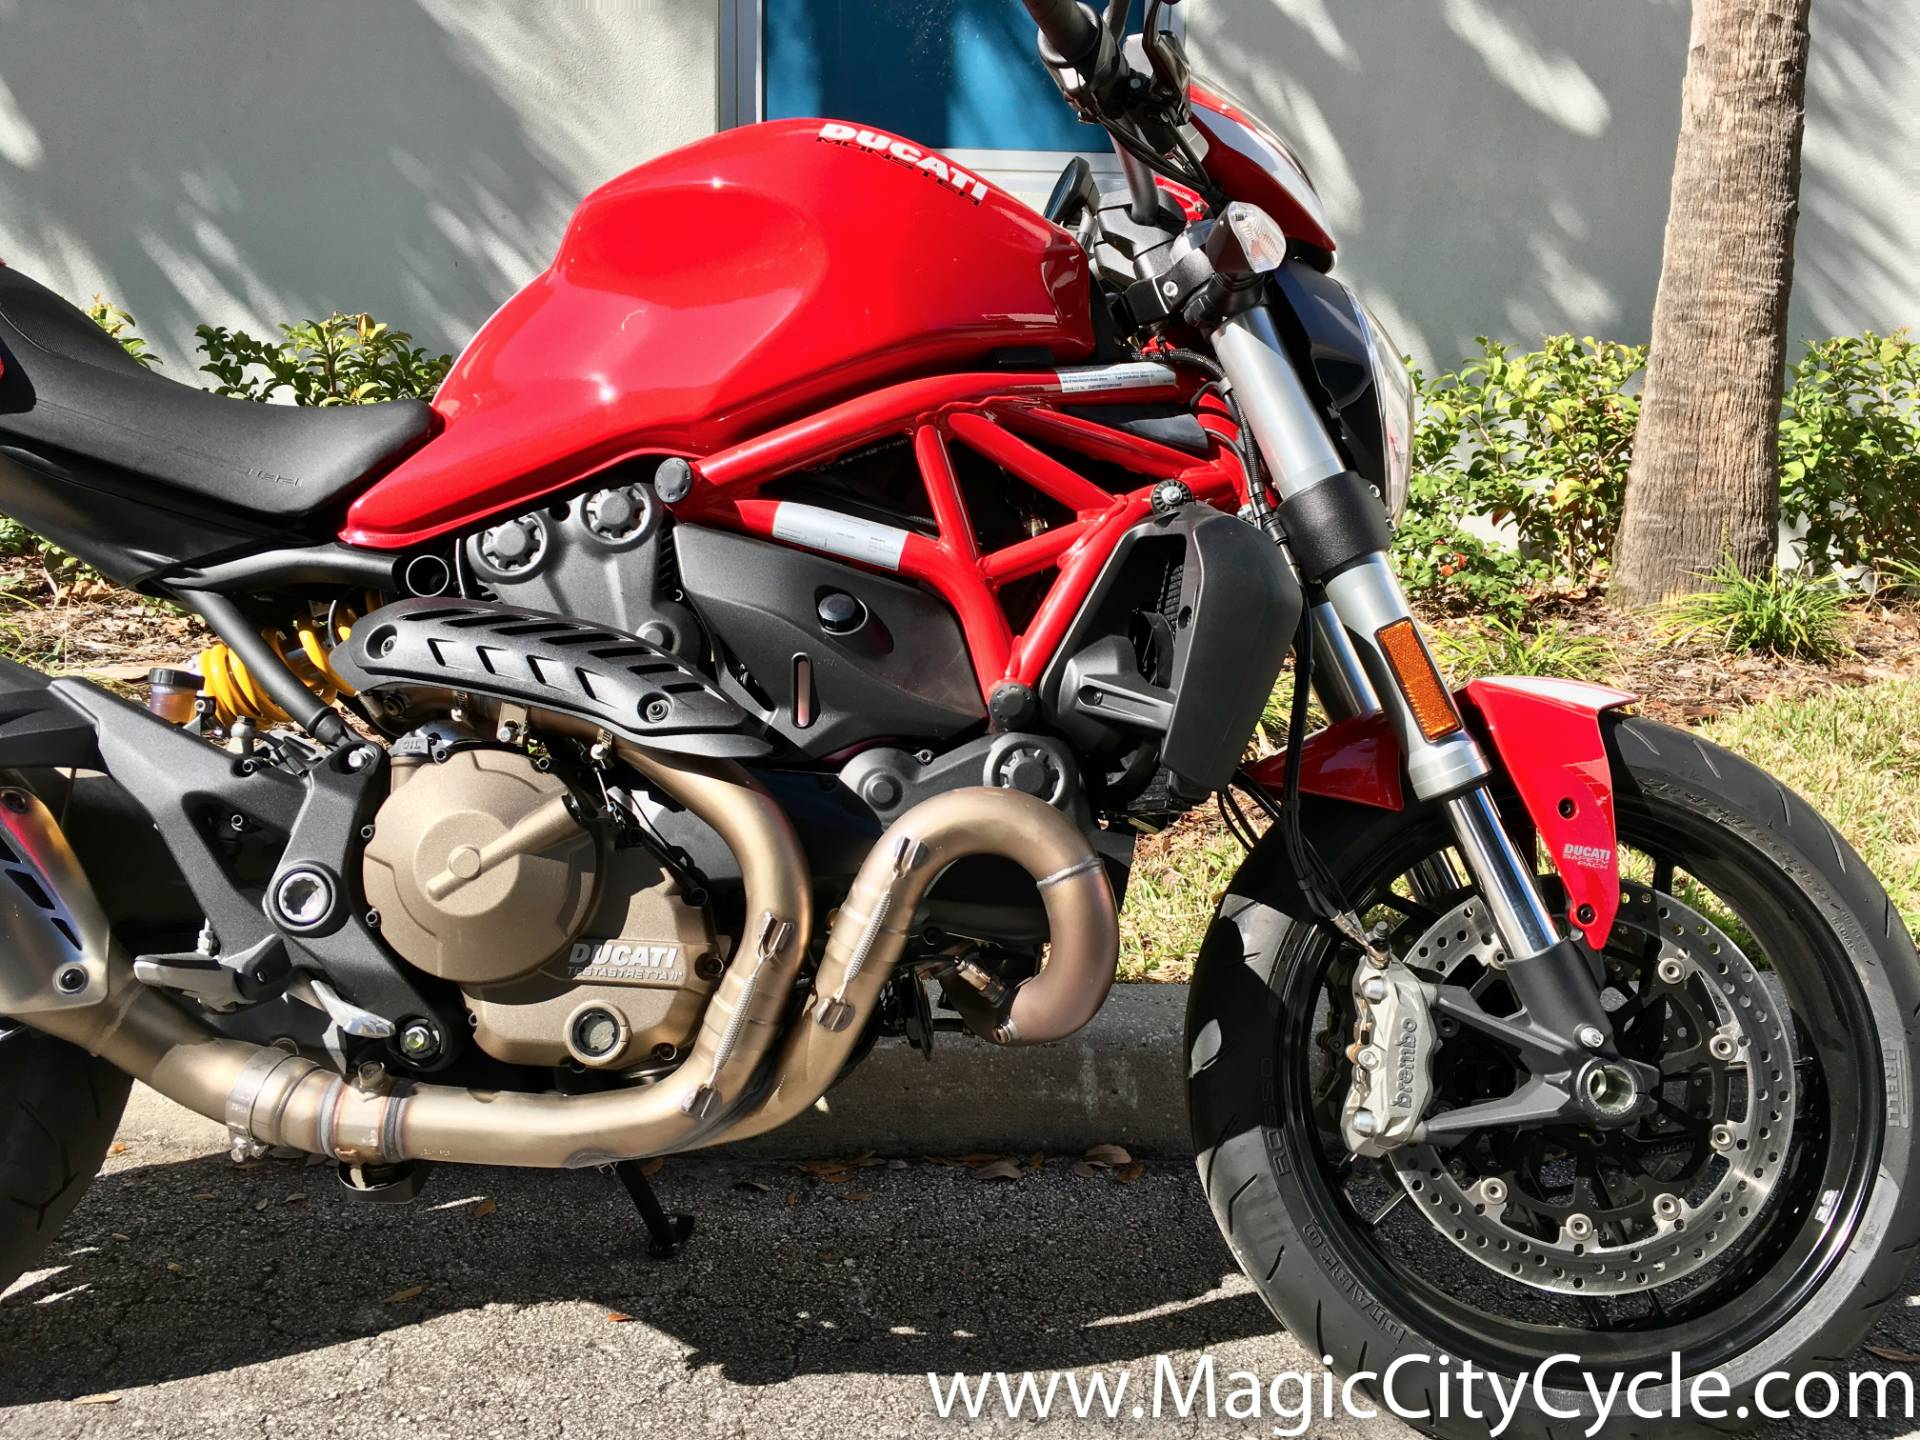 2016 Ducati Monster 821 in Orlando, Florida